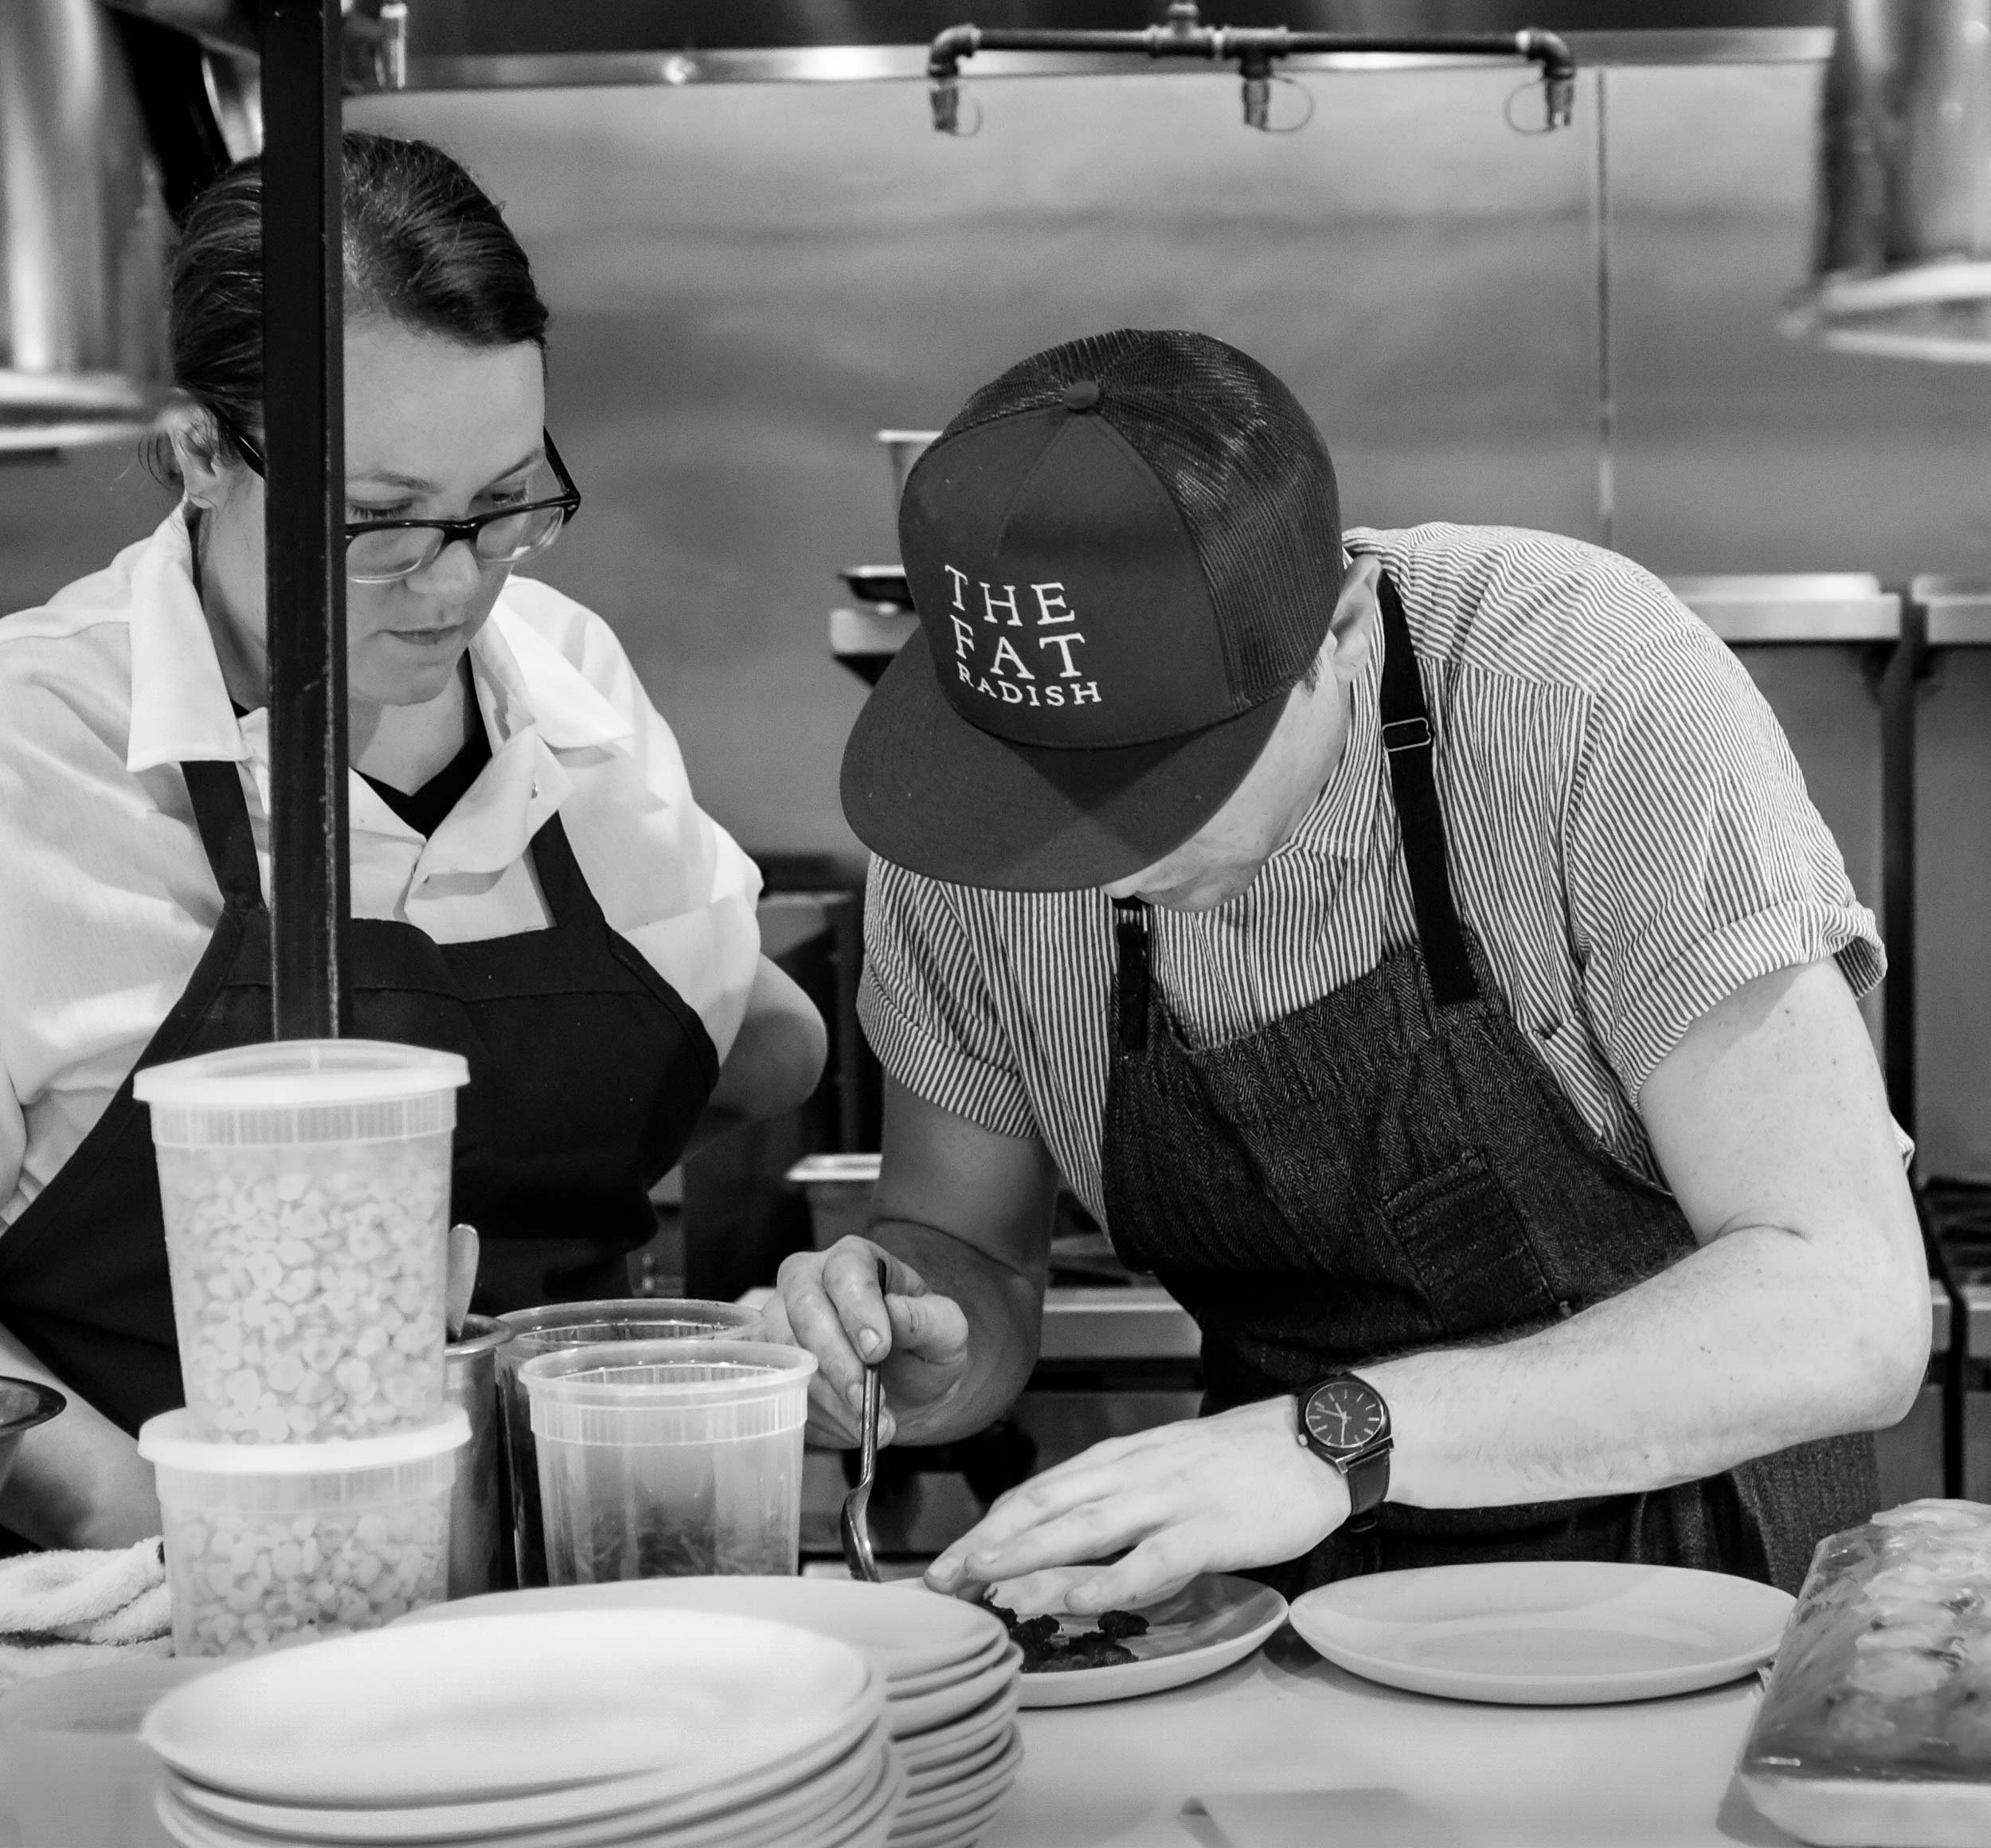 Chef Nick Wilbur Plating Food at Fat Radish pop-up at Basic Kitchen